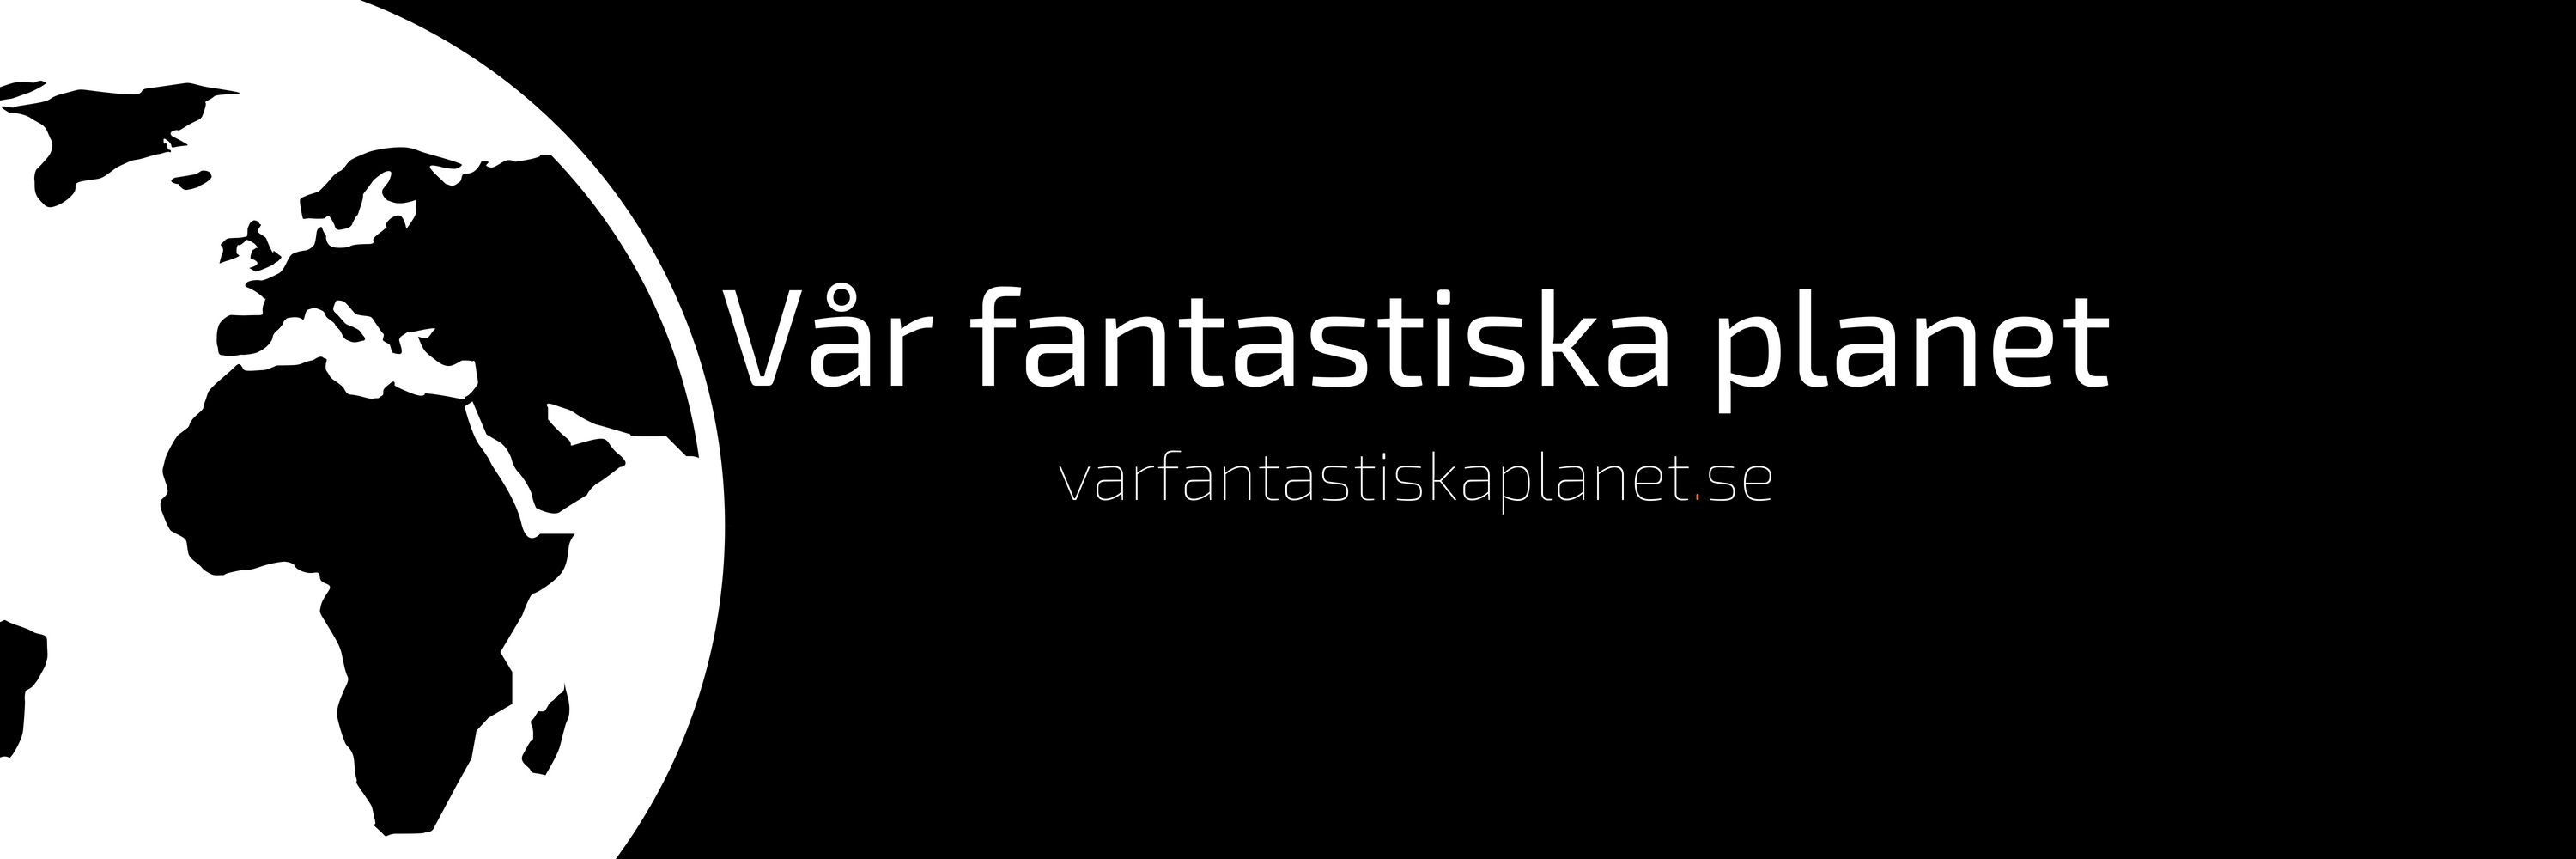 Vår fantastiska planet